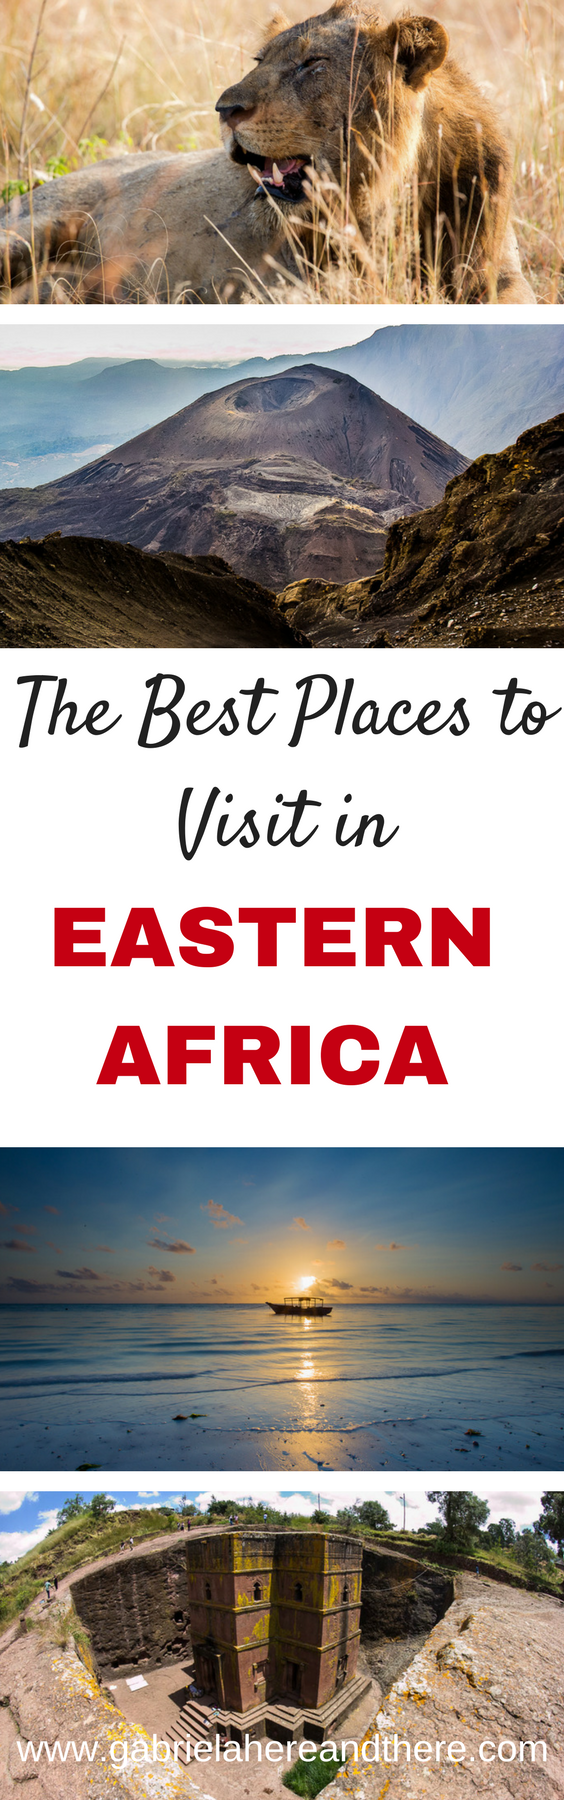 The Best Places to Visit in Eastern Africa